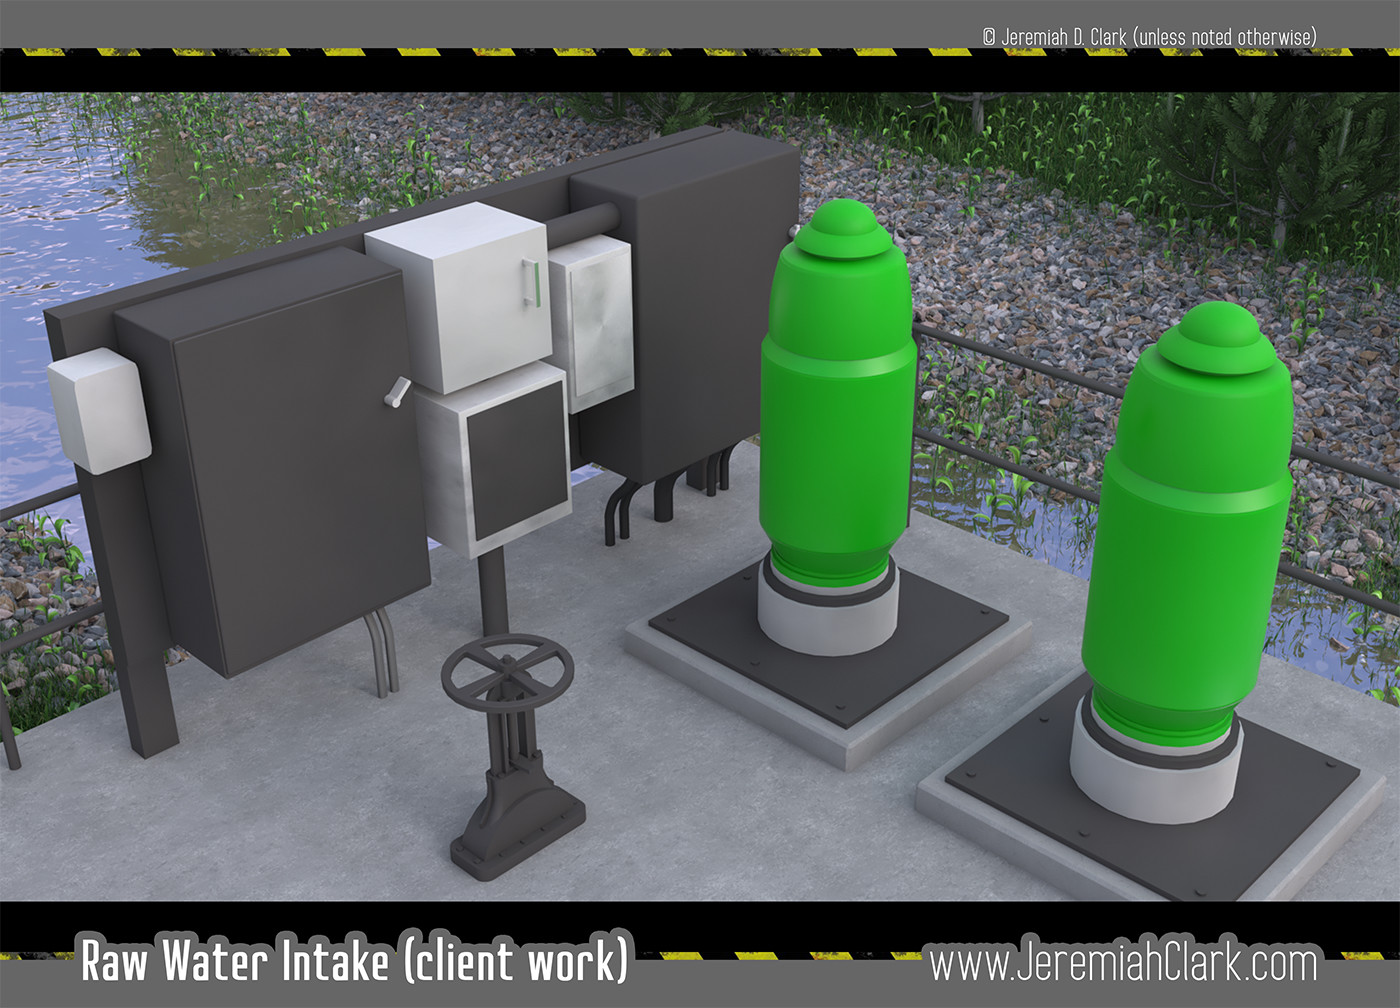 Raw Water Intake Screen.  Modeled and textured in 3Ds Max.  River stones and plants made using Itoo Forest Pack. Rendered with V-Ray.